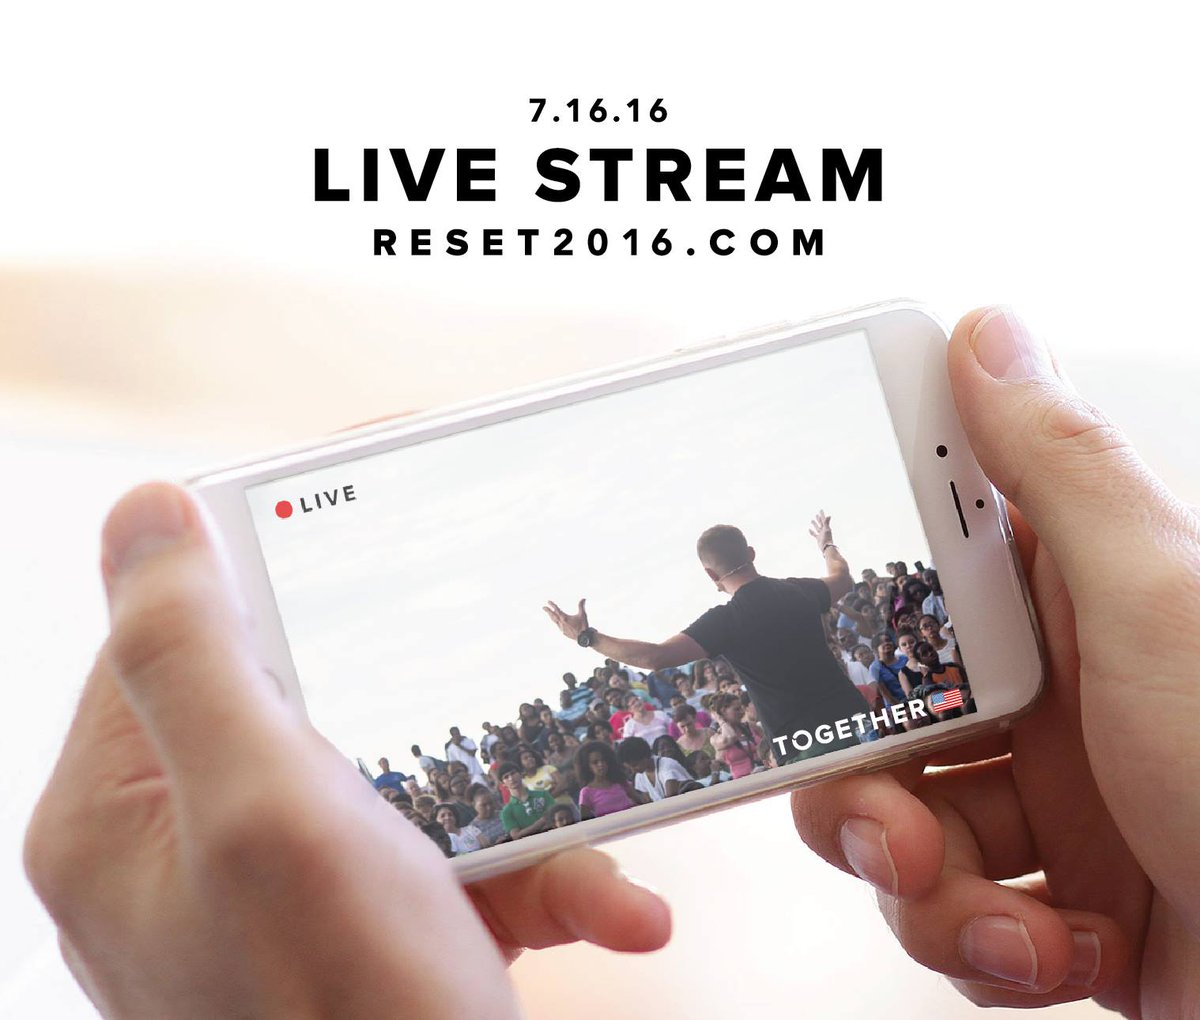 Watch #Together2016 live stream and pray with us. Begins at 9AM (EST) TOMORROW. Go to https://t.co/LAWgMJskf1. https://t.co/0oEkUwjxcr